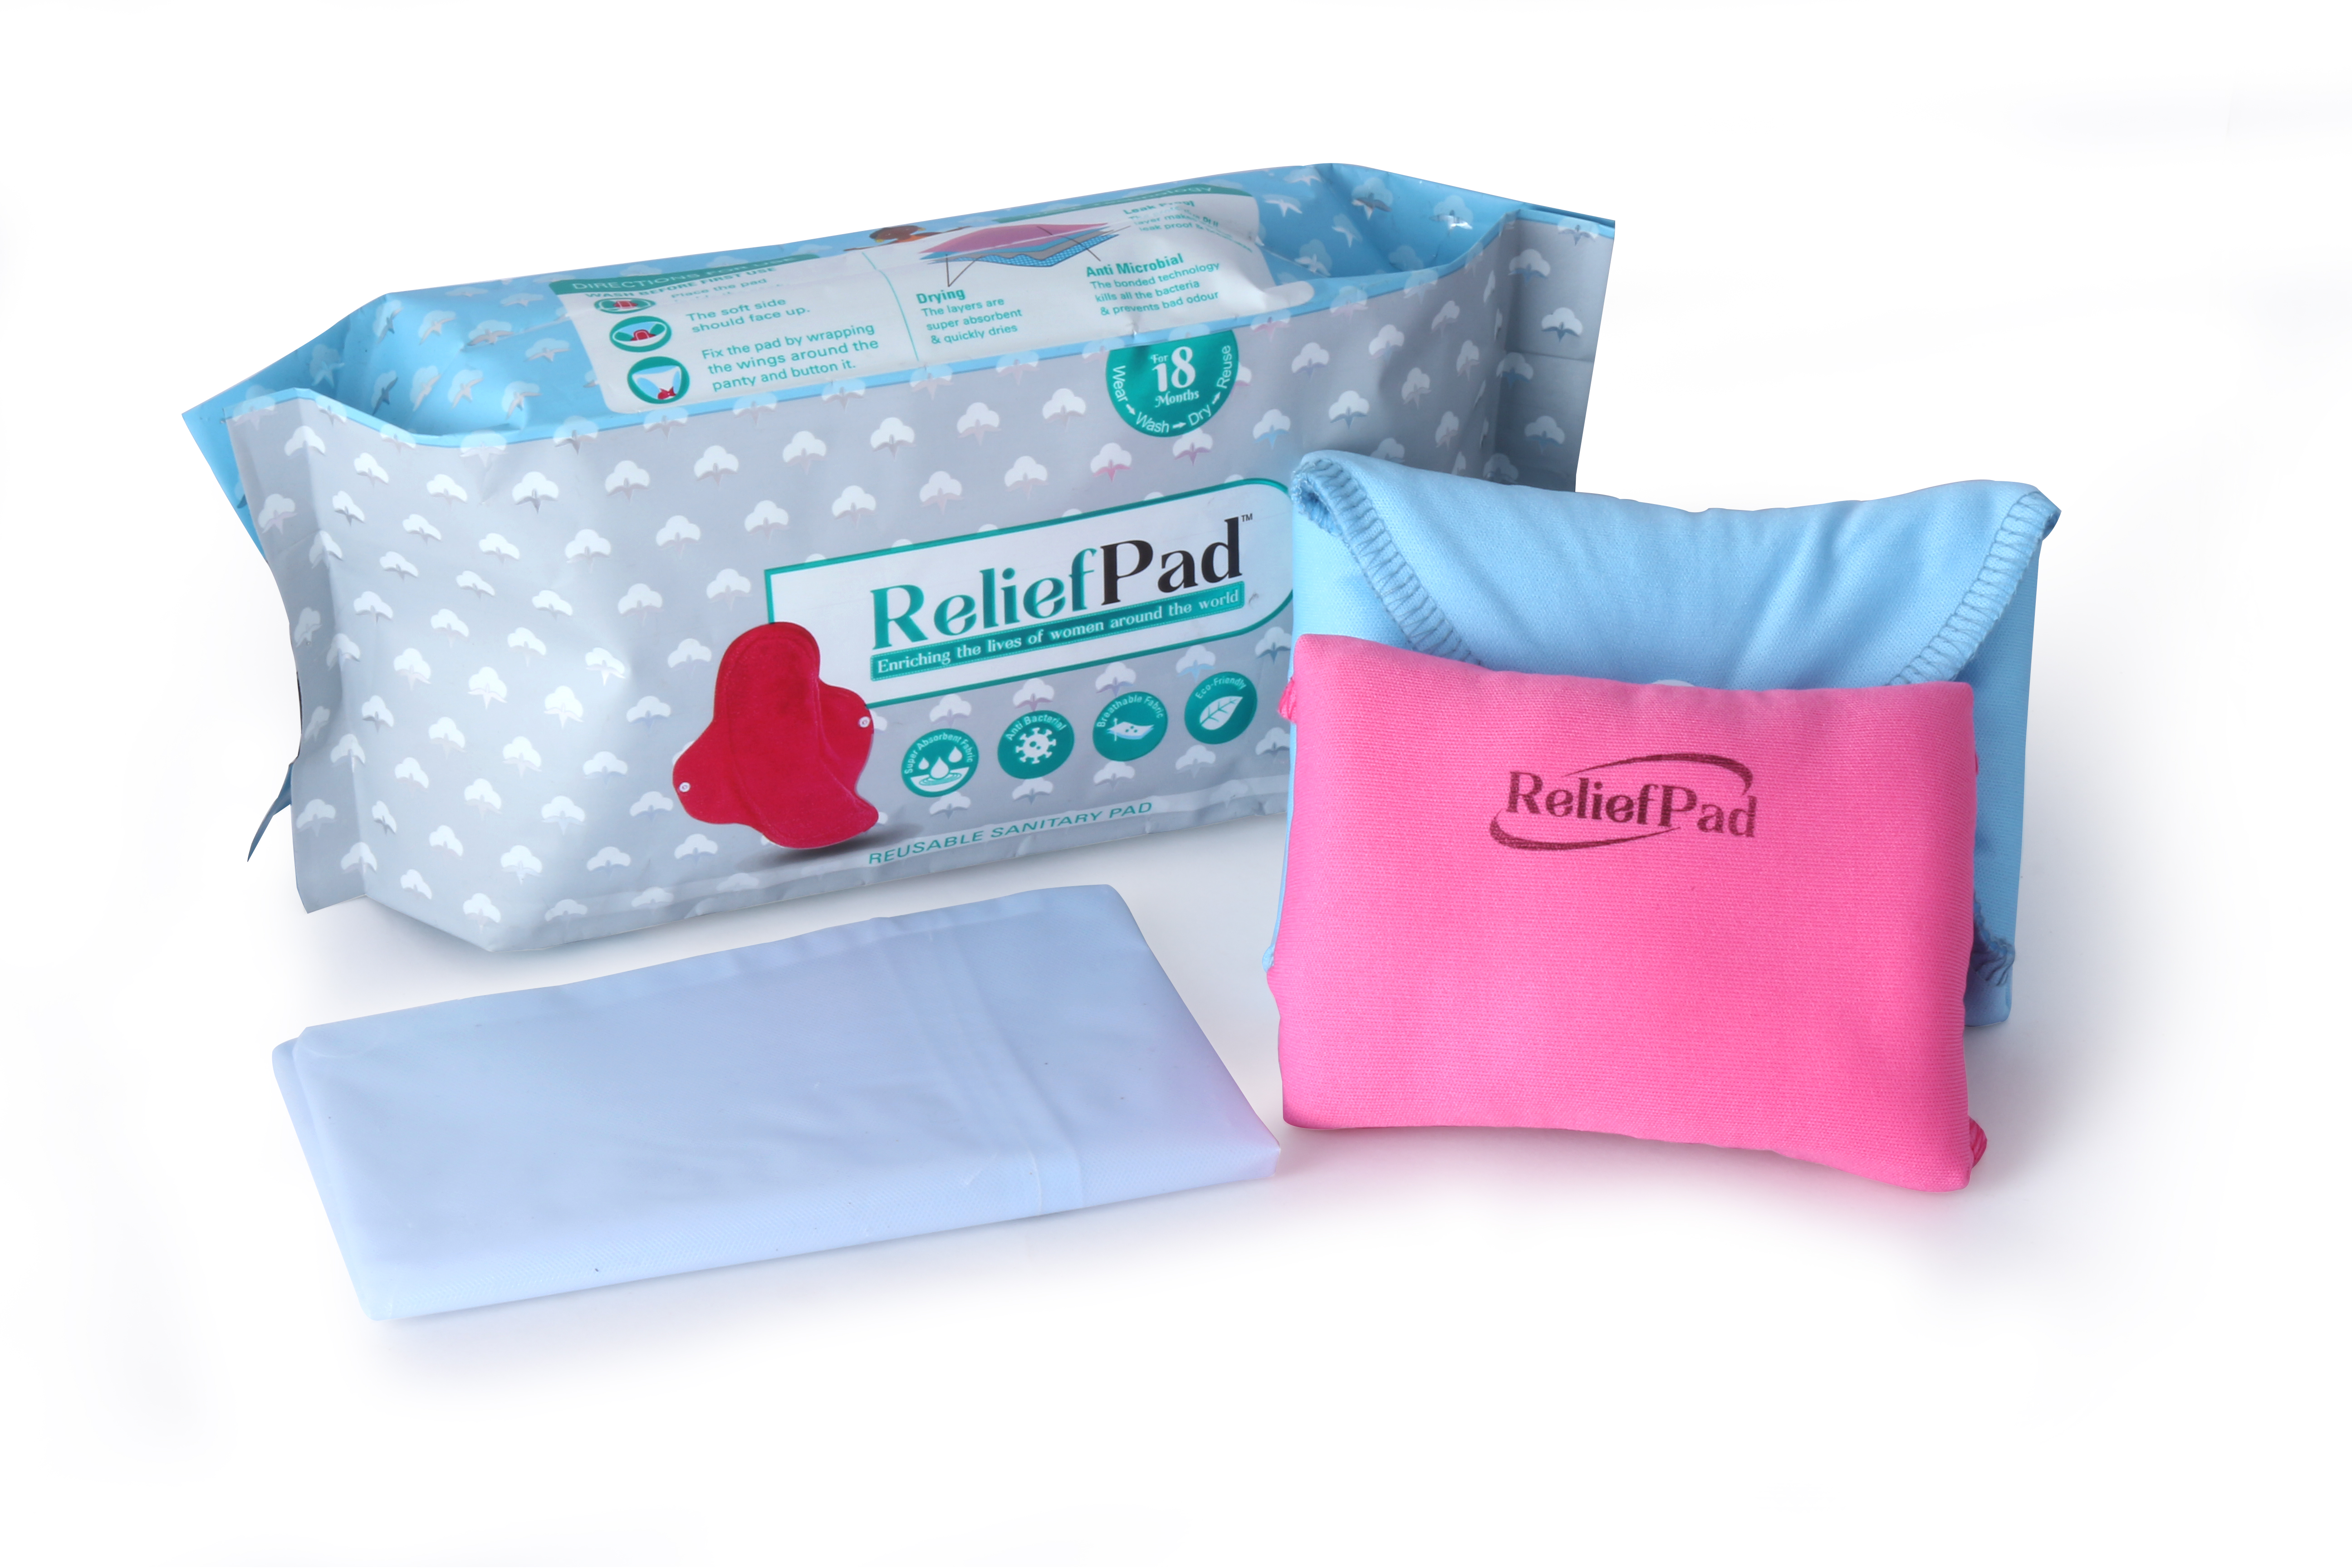 Relief Pad A Reusable Sanitary Pad Csrbox